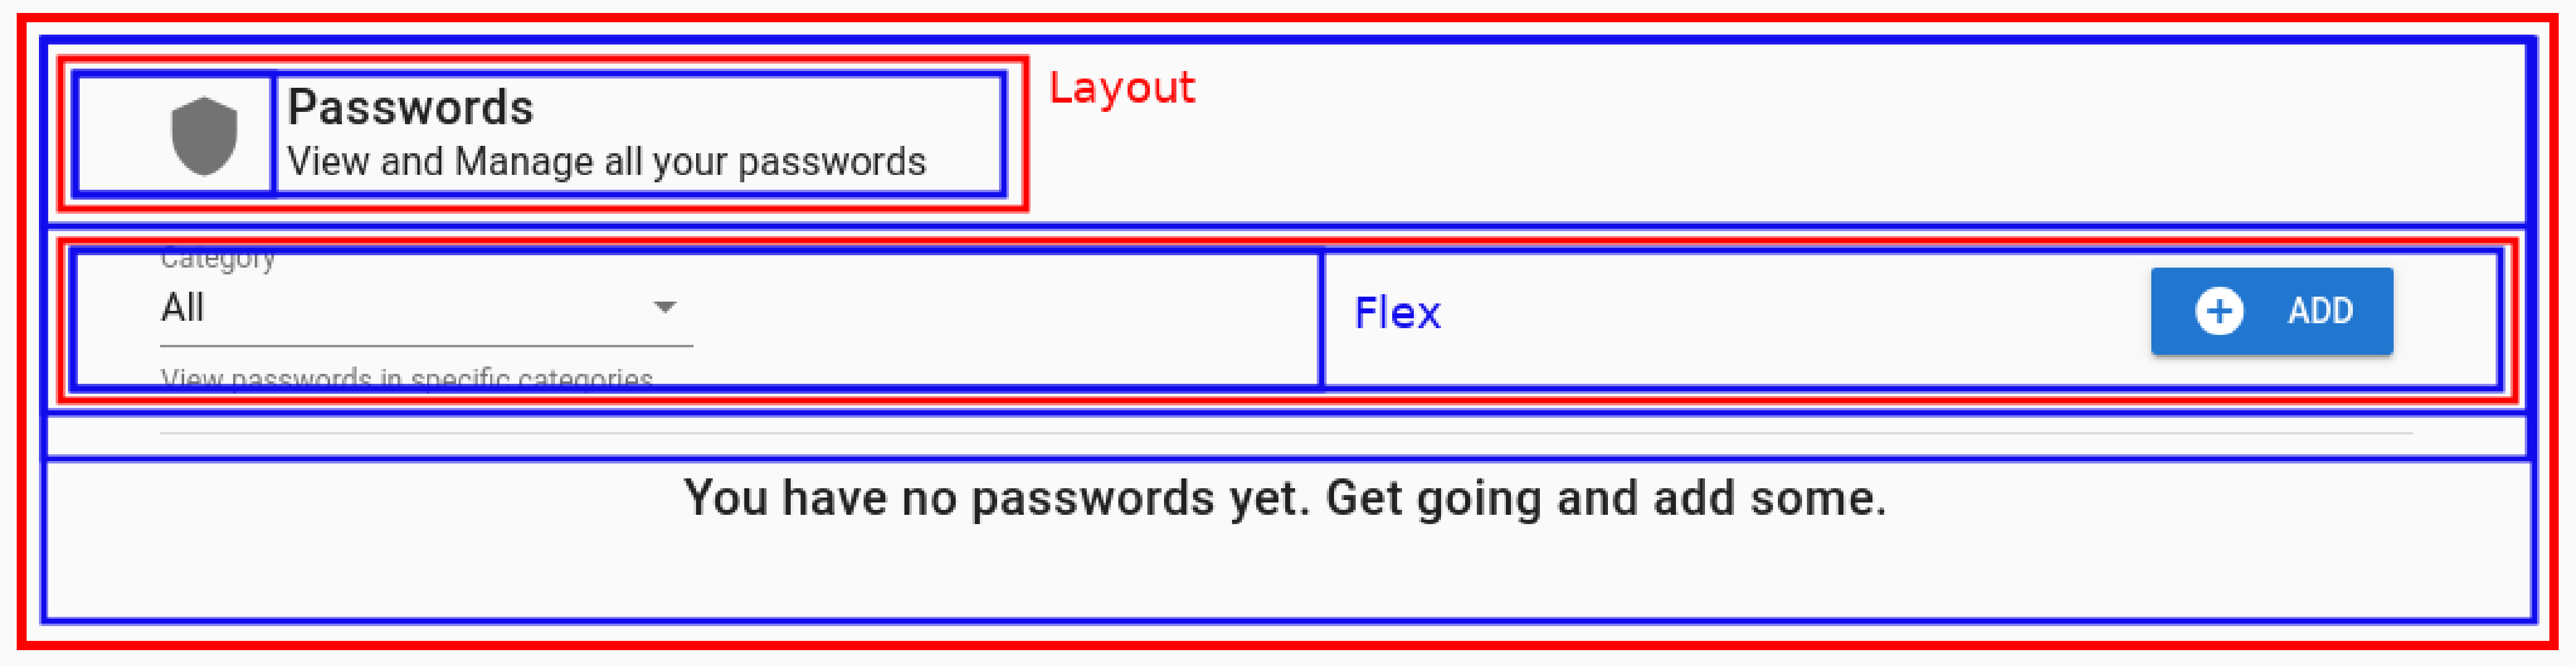 David_passwords-layout-02